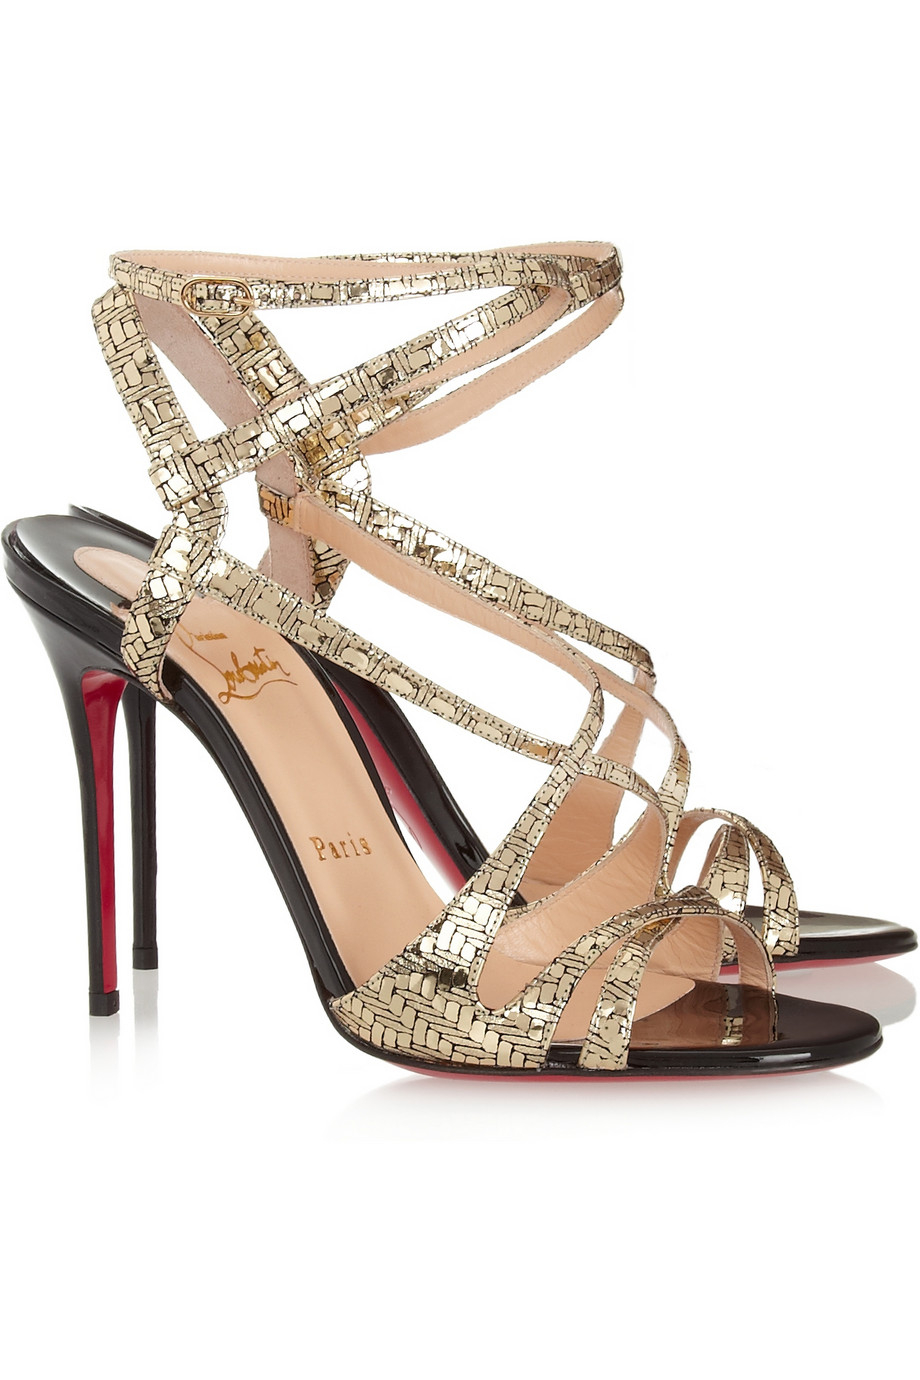 christian louboutin glitter sandals Metallic gold crossover straps ...